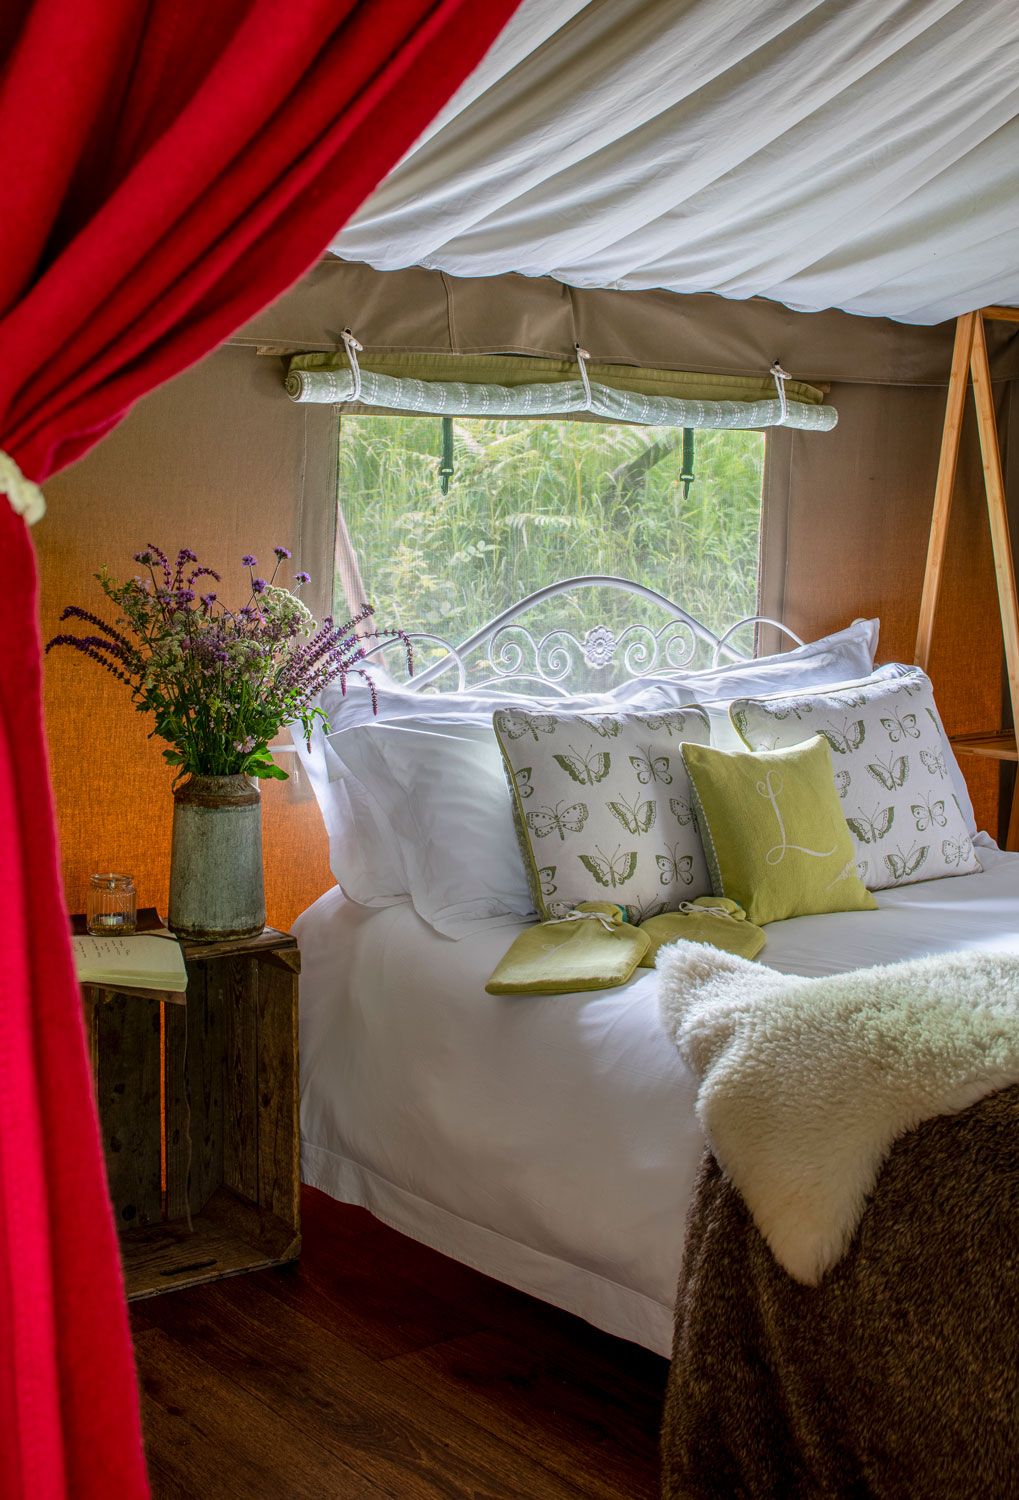 Loglands Devon Luxury Glamping Accommodation